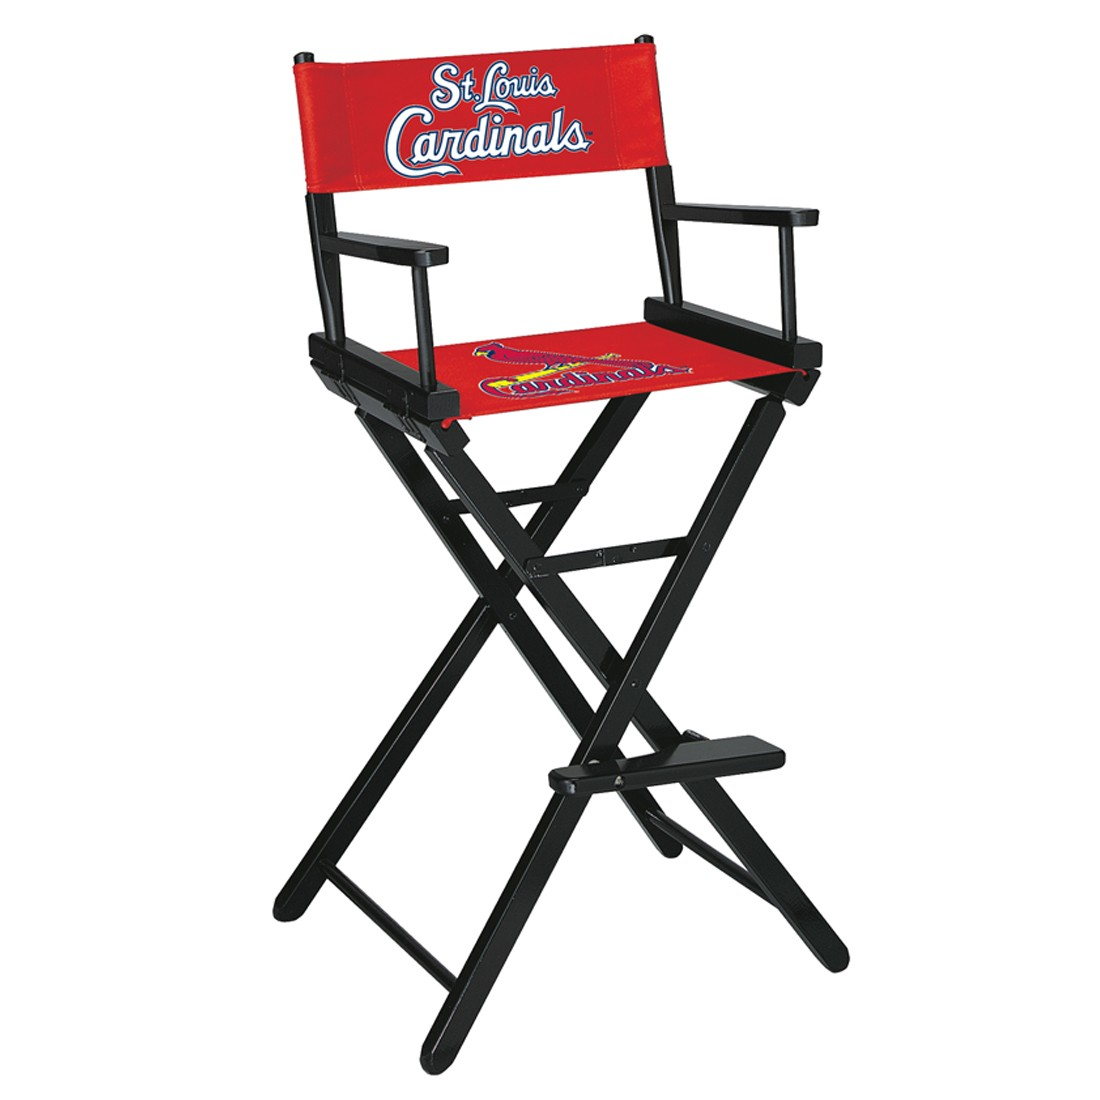 ST.LOUIS CARDINALS BAR HEIGHT DIRECTORS CHAIR